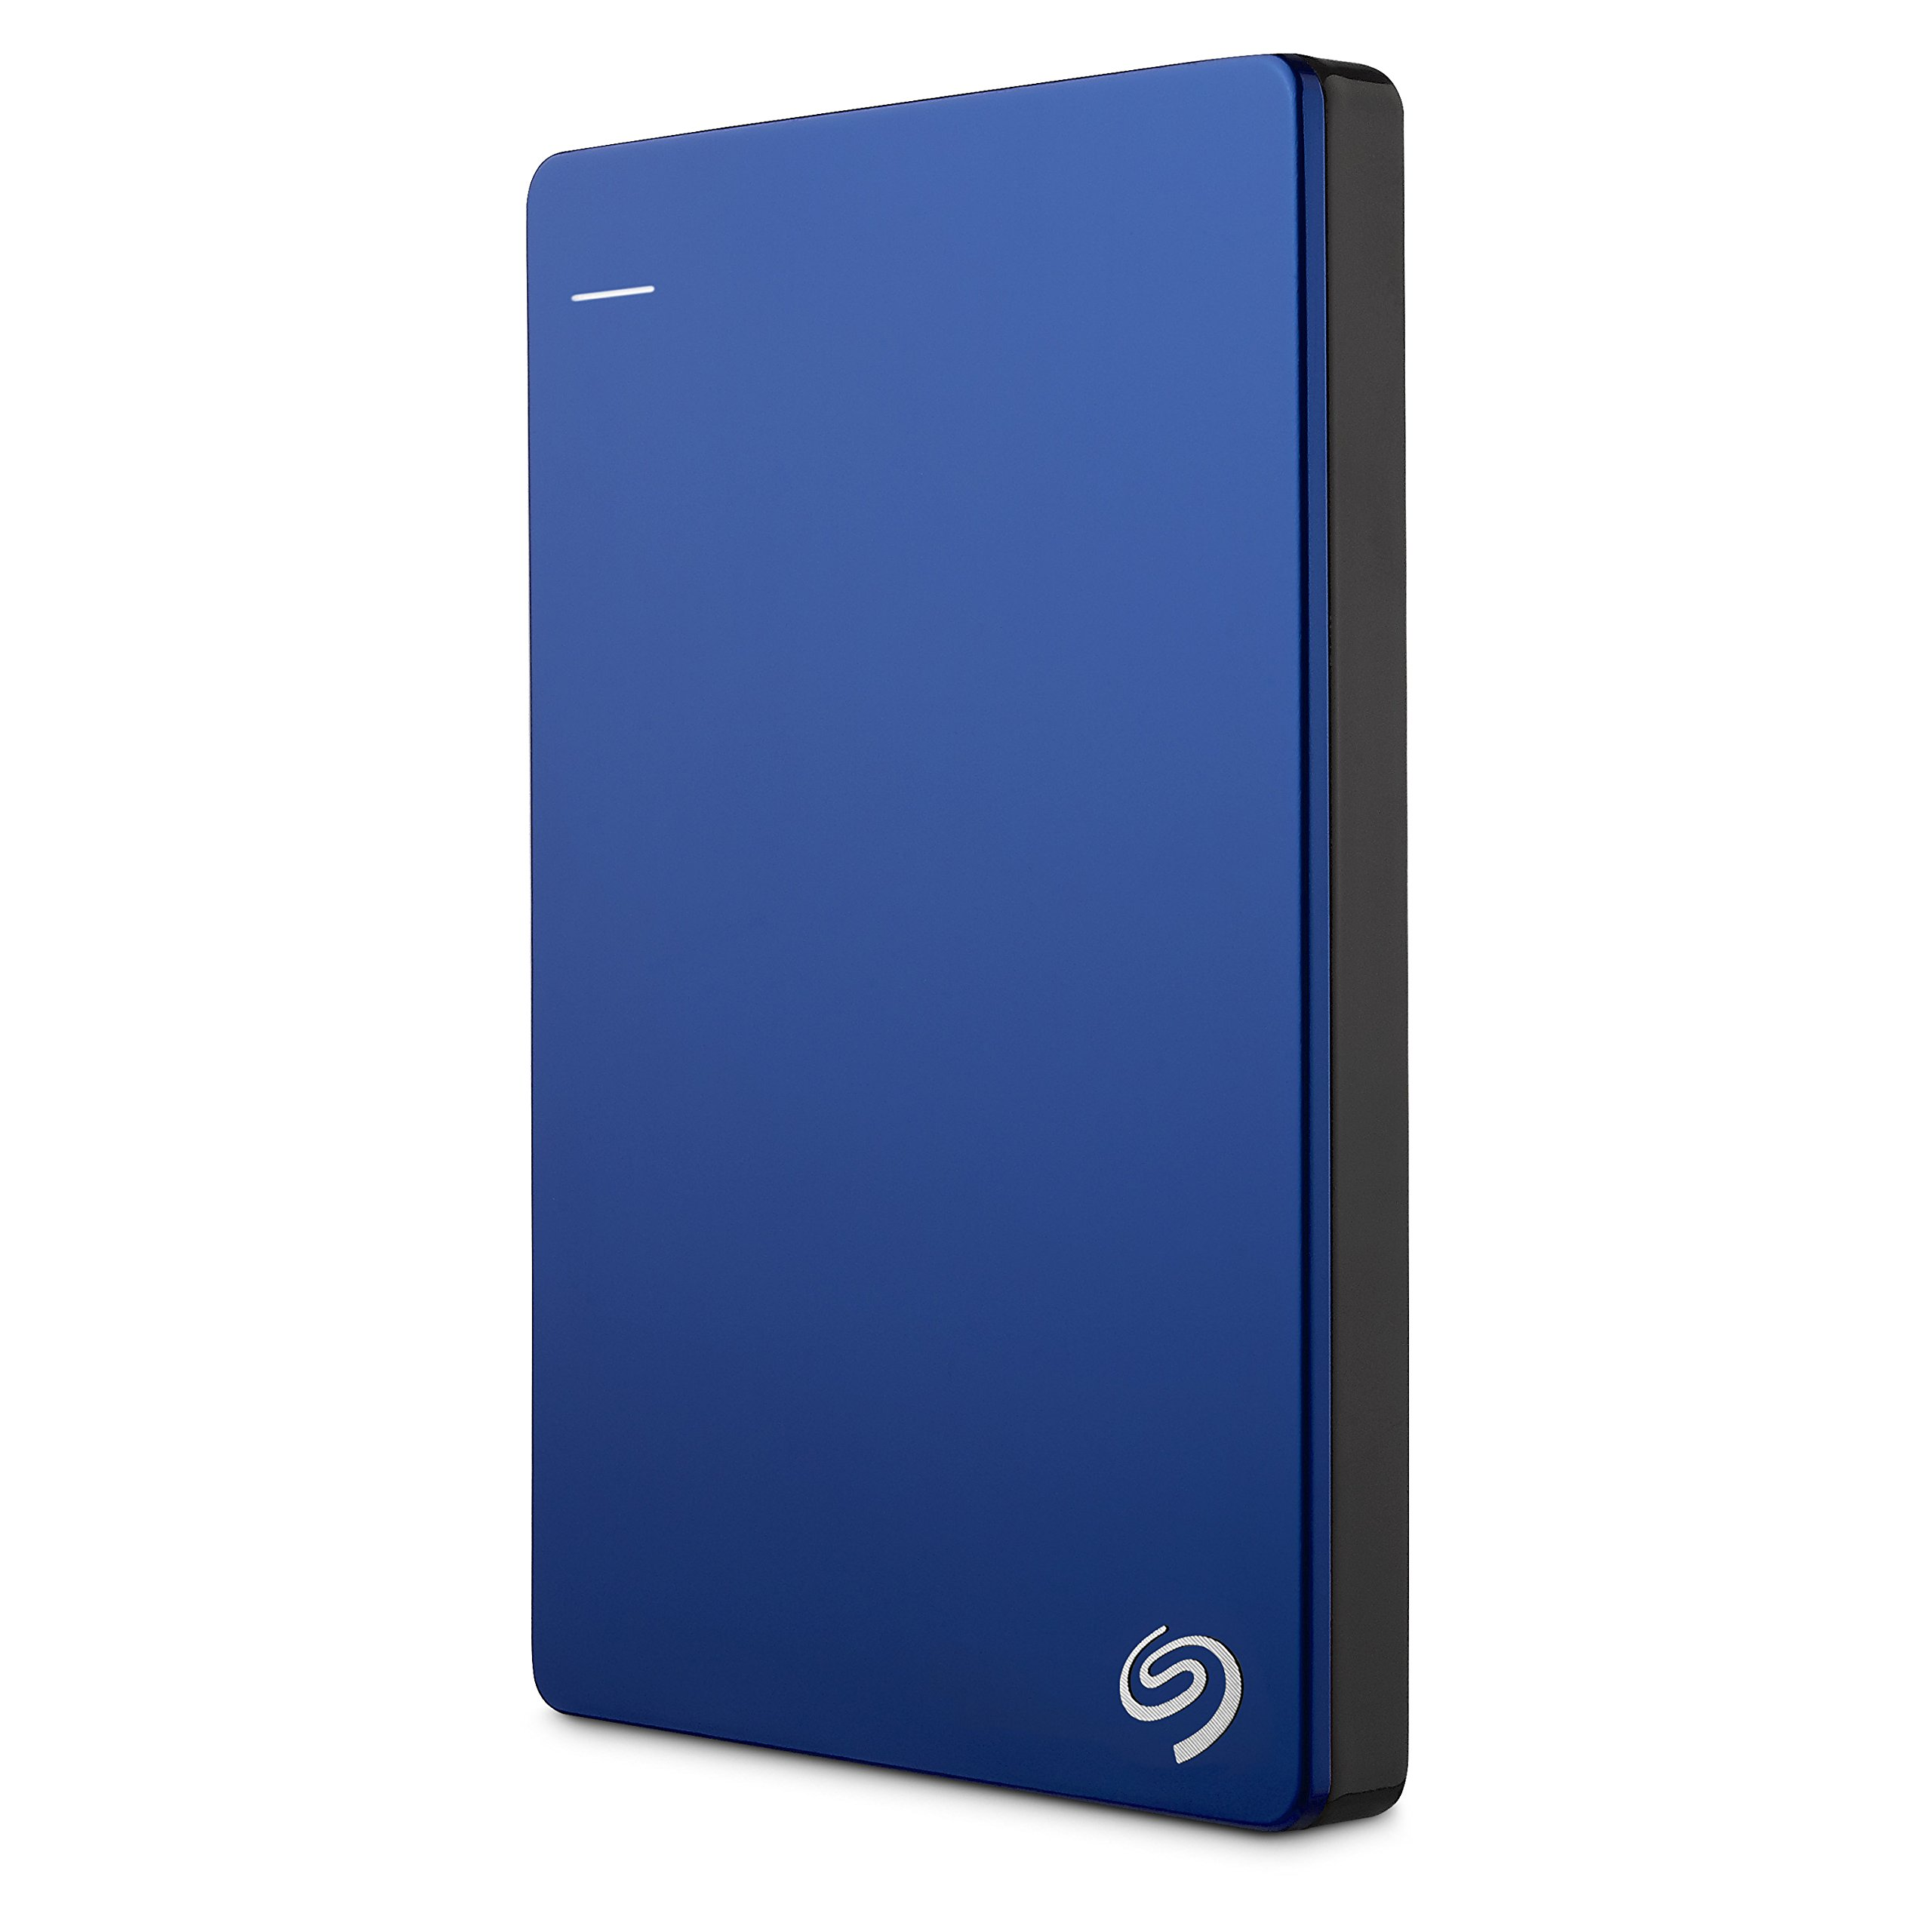 Seagate Backup Plus Slim 2TB Portable External Hard Drive USB 3.0, Blue (STDR2000102) by Seagate